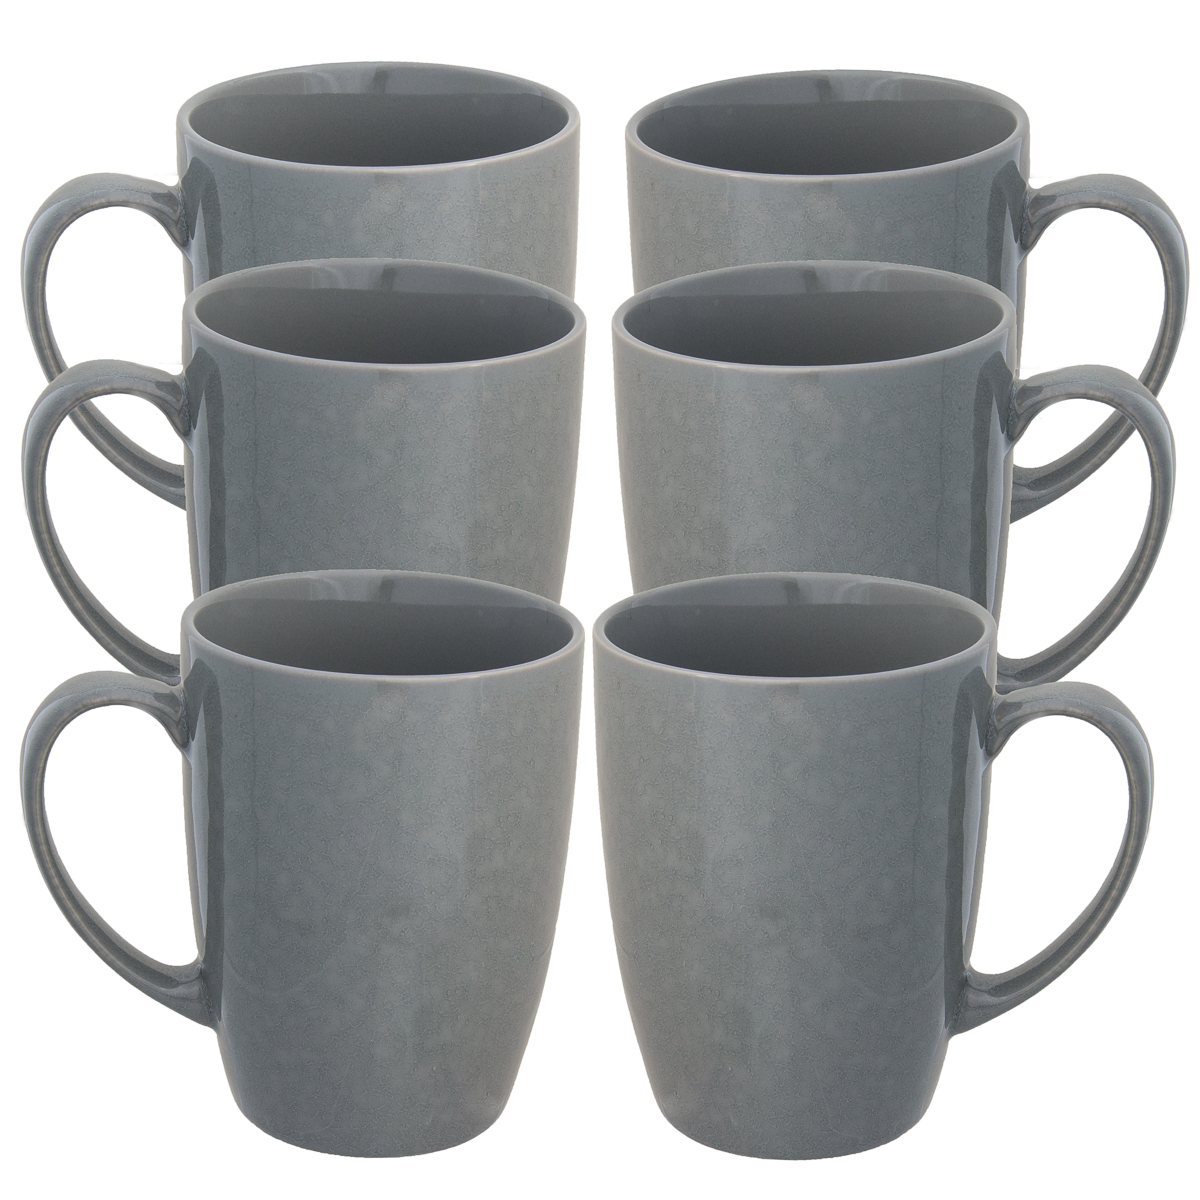 Fuse (6 Pack) Porcelain Coffee Mug With Handles Set Glazed Ceramic Mug 15oz Reusable Hot Cocoa Tea Cup